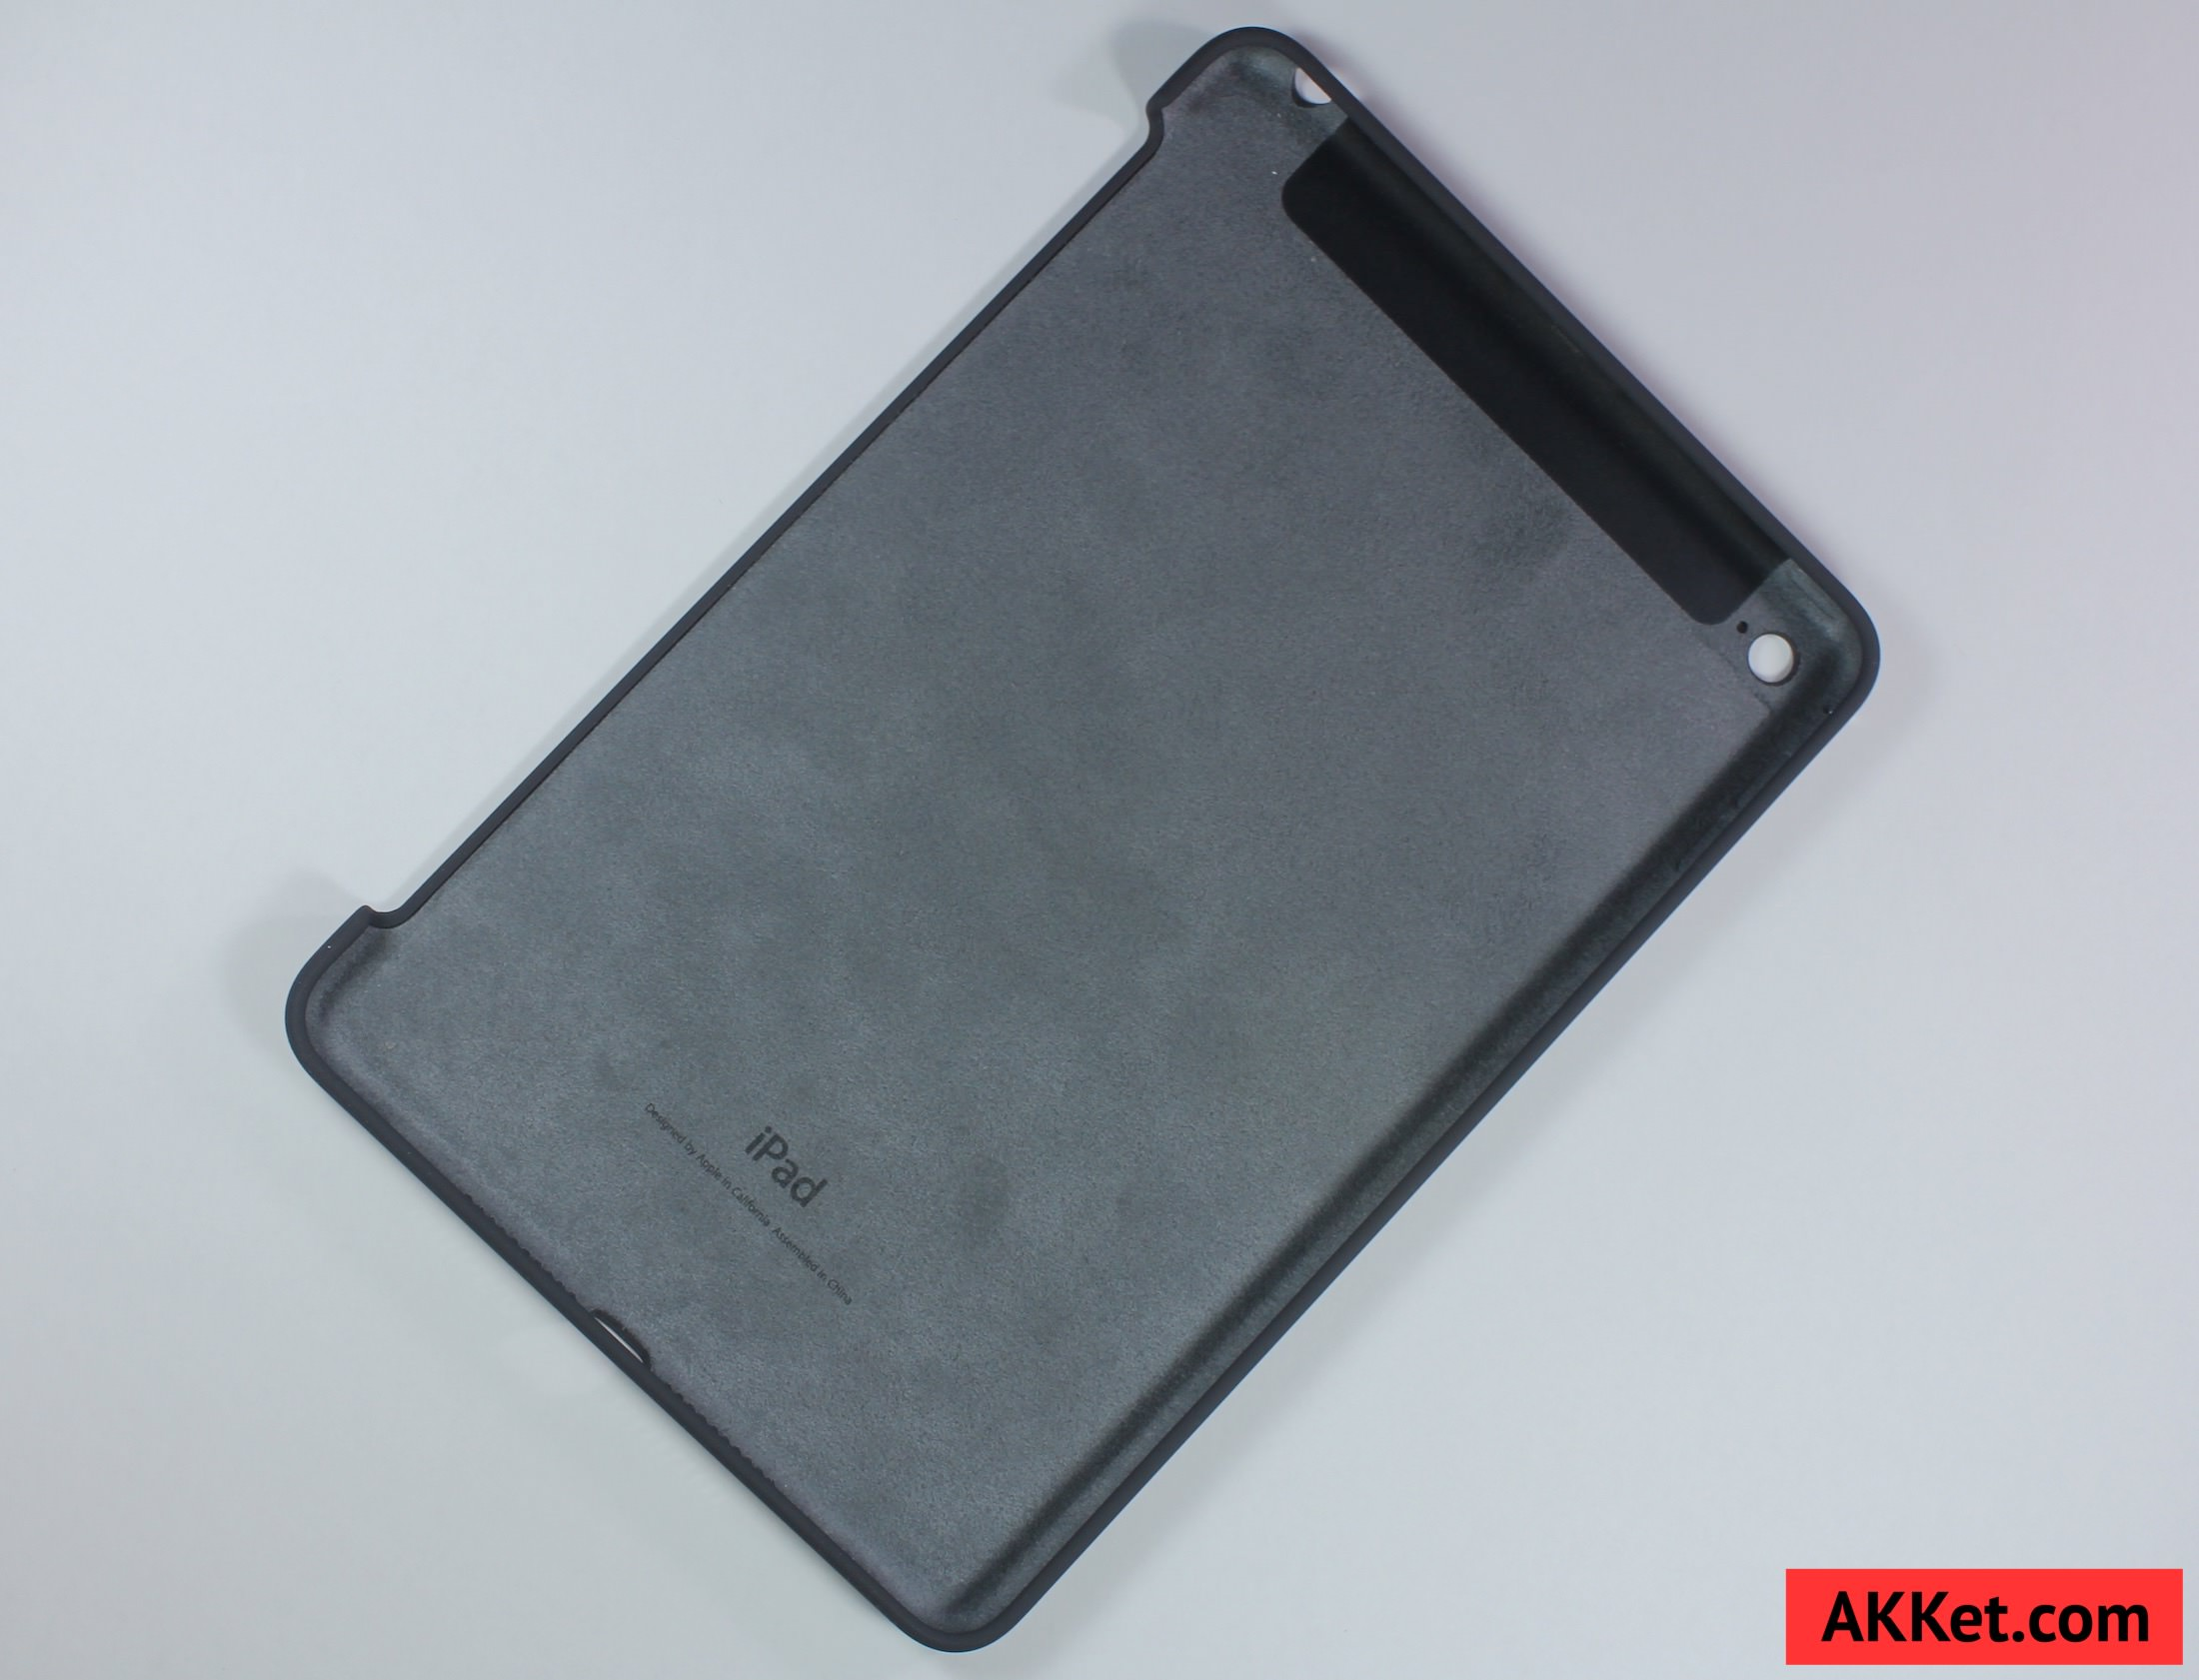 Apple Silicone Case iPad mini 4 Charcoal Gray review 7